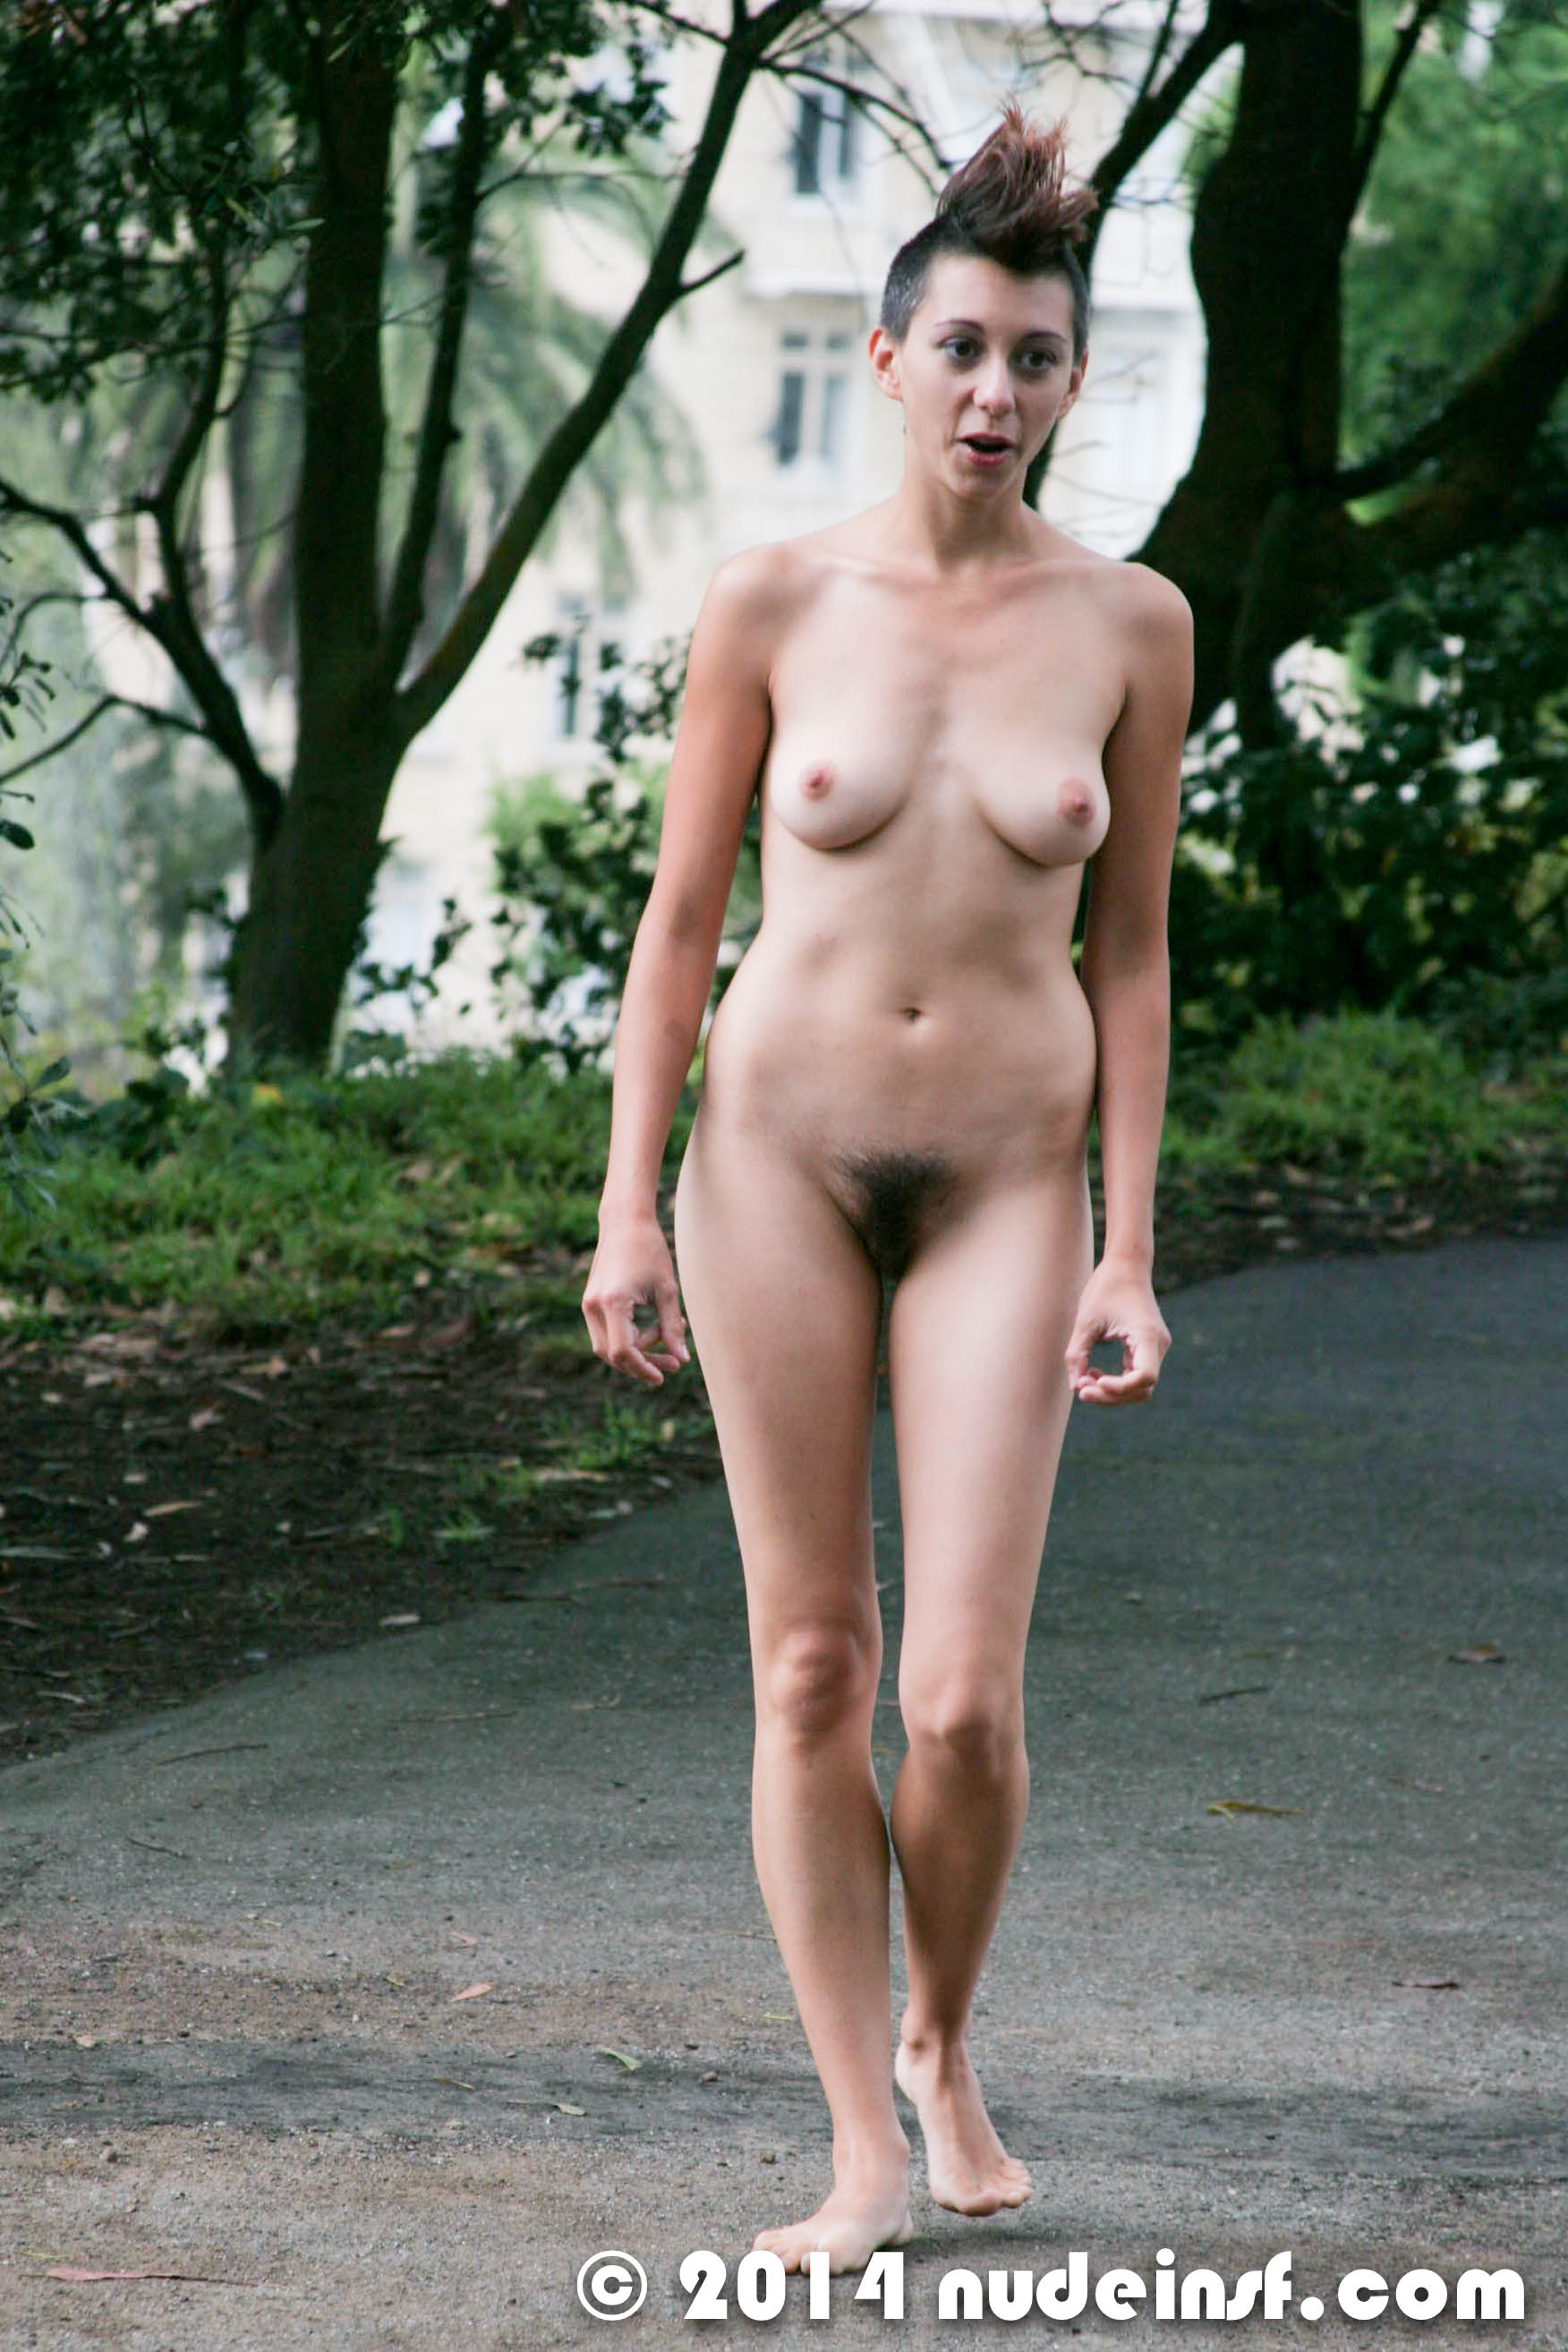 Family girl nude embarrassed